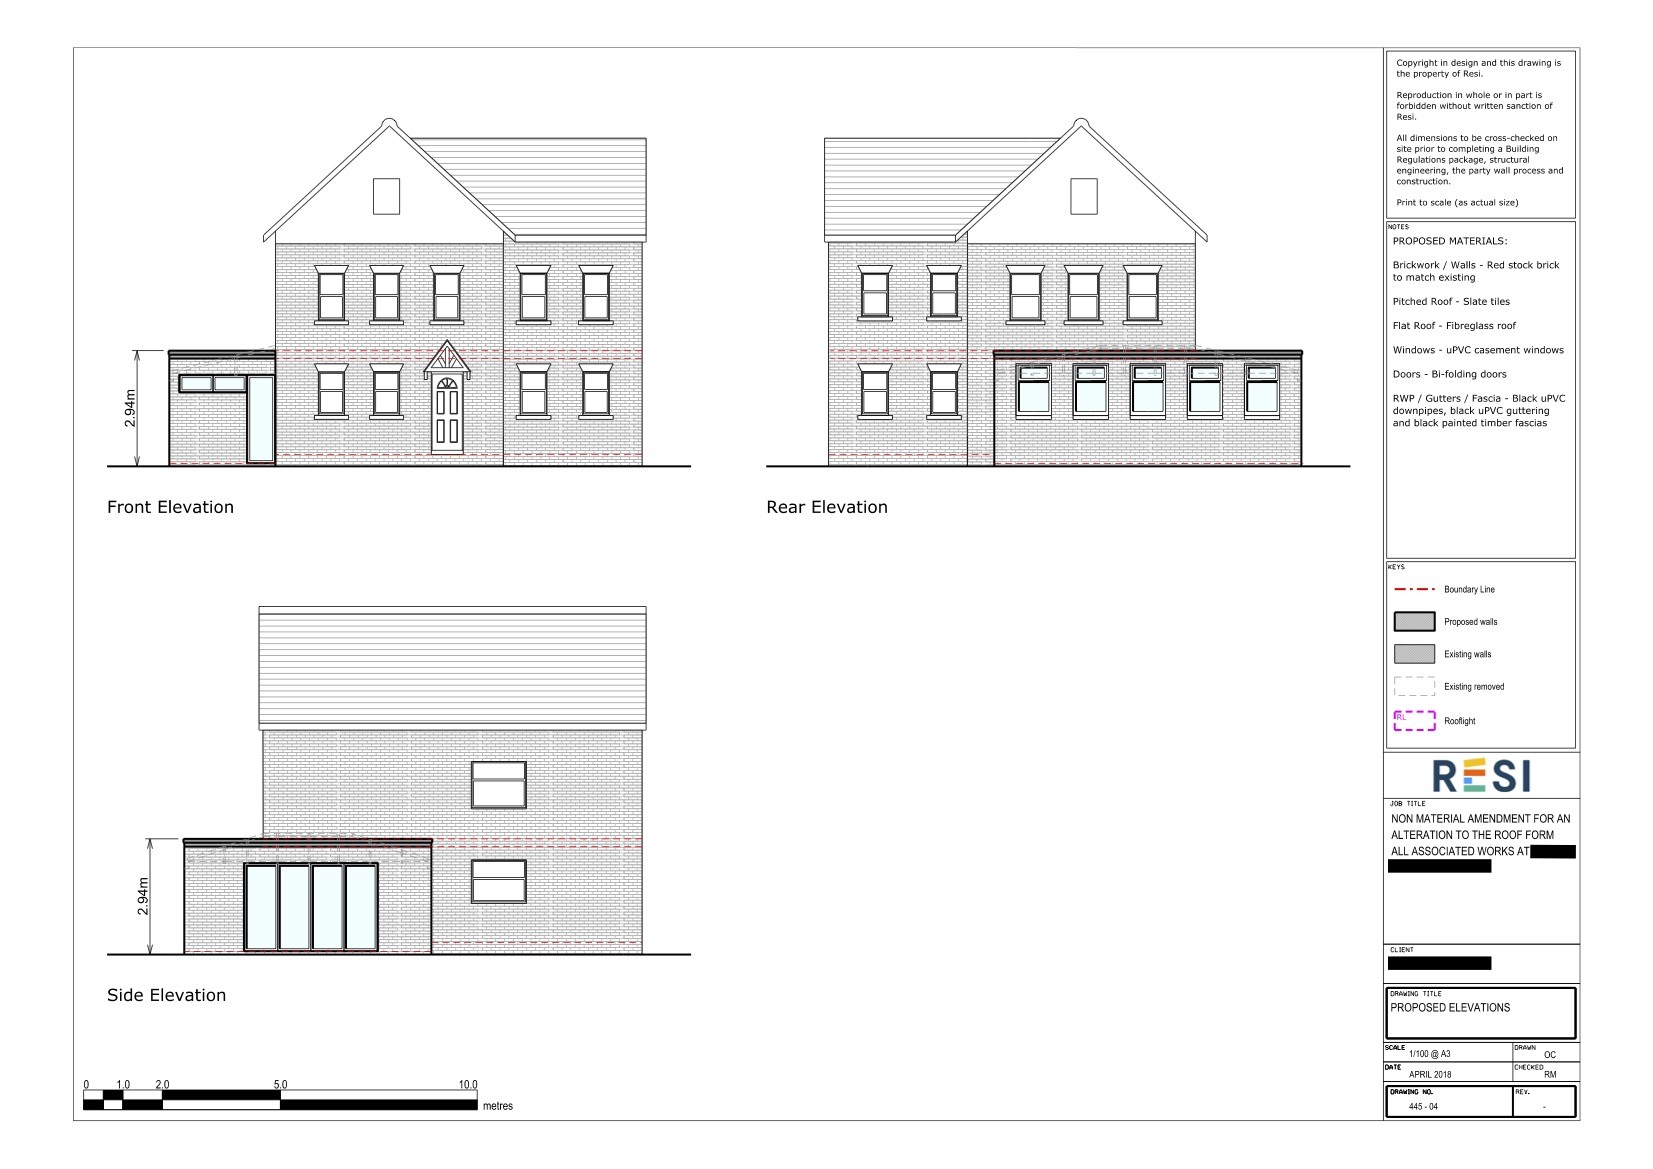 78 half acre road   architectural drawings   elevations